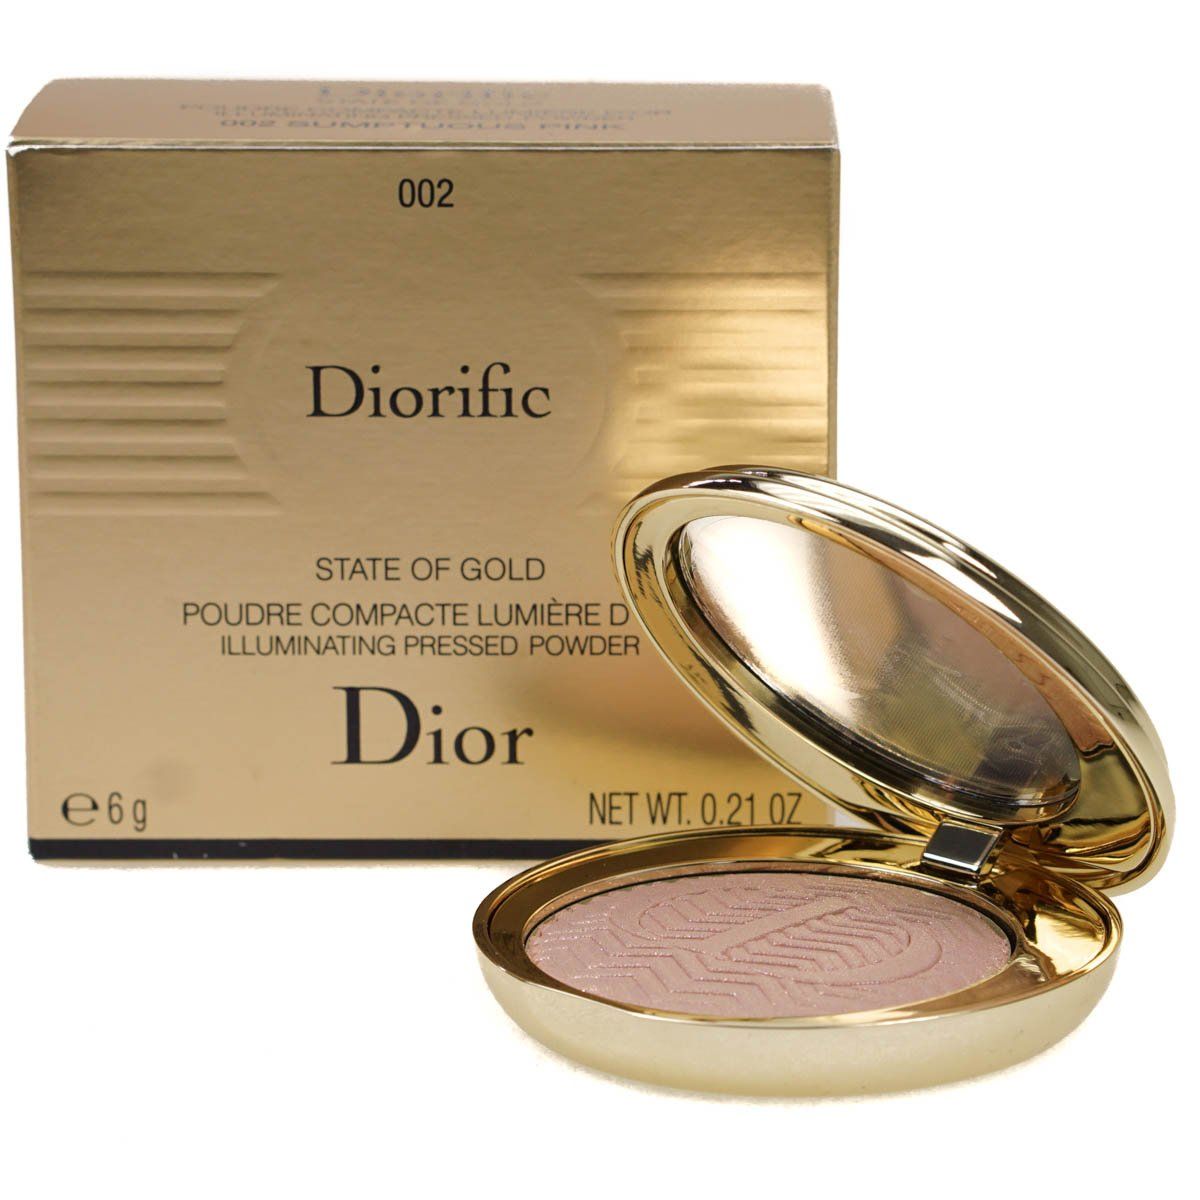 14212d6a426 Dior Diorific State of Gold Poudre Compacte Lumiere D Or Illuminating  Pressed Face Powder Highlight 002 Sumptuous Pink 6grams  Amazon.co.uk   Beauty